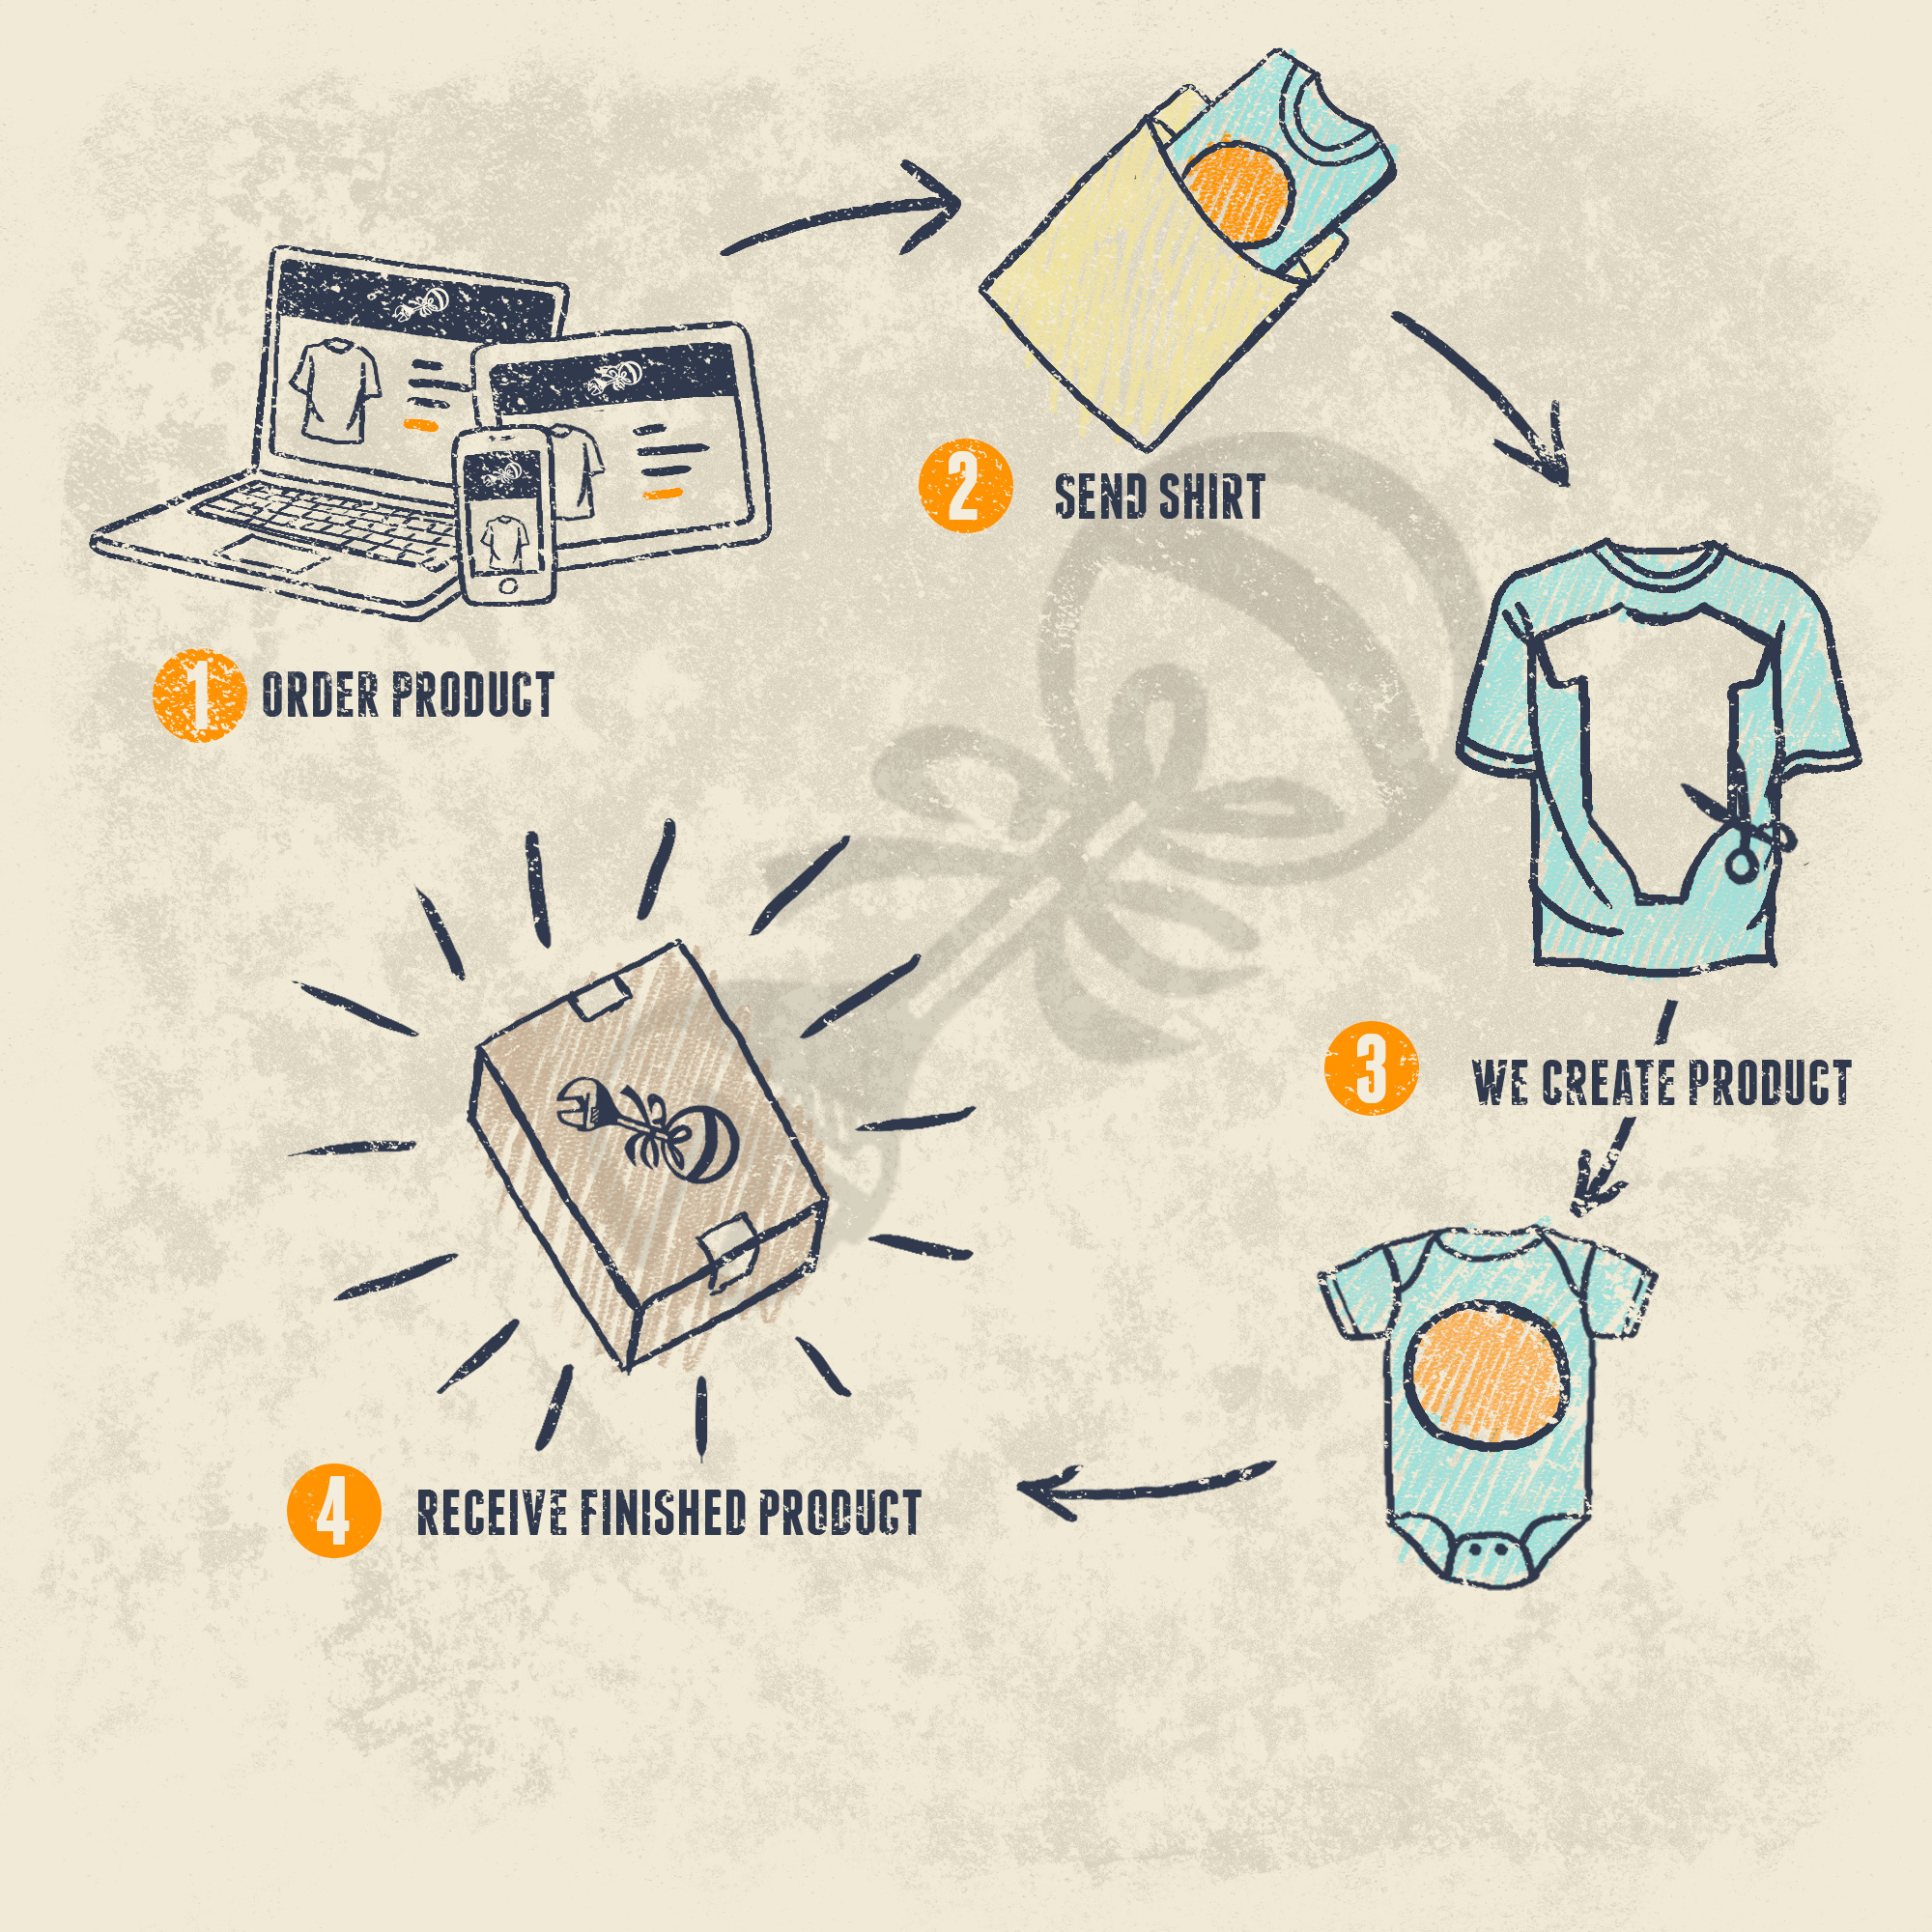 PF-howitworks-graphic4steps.jpg